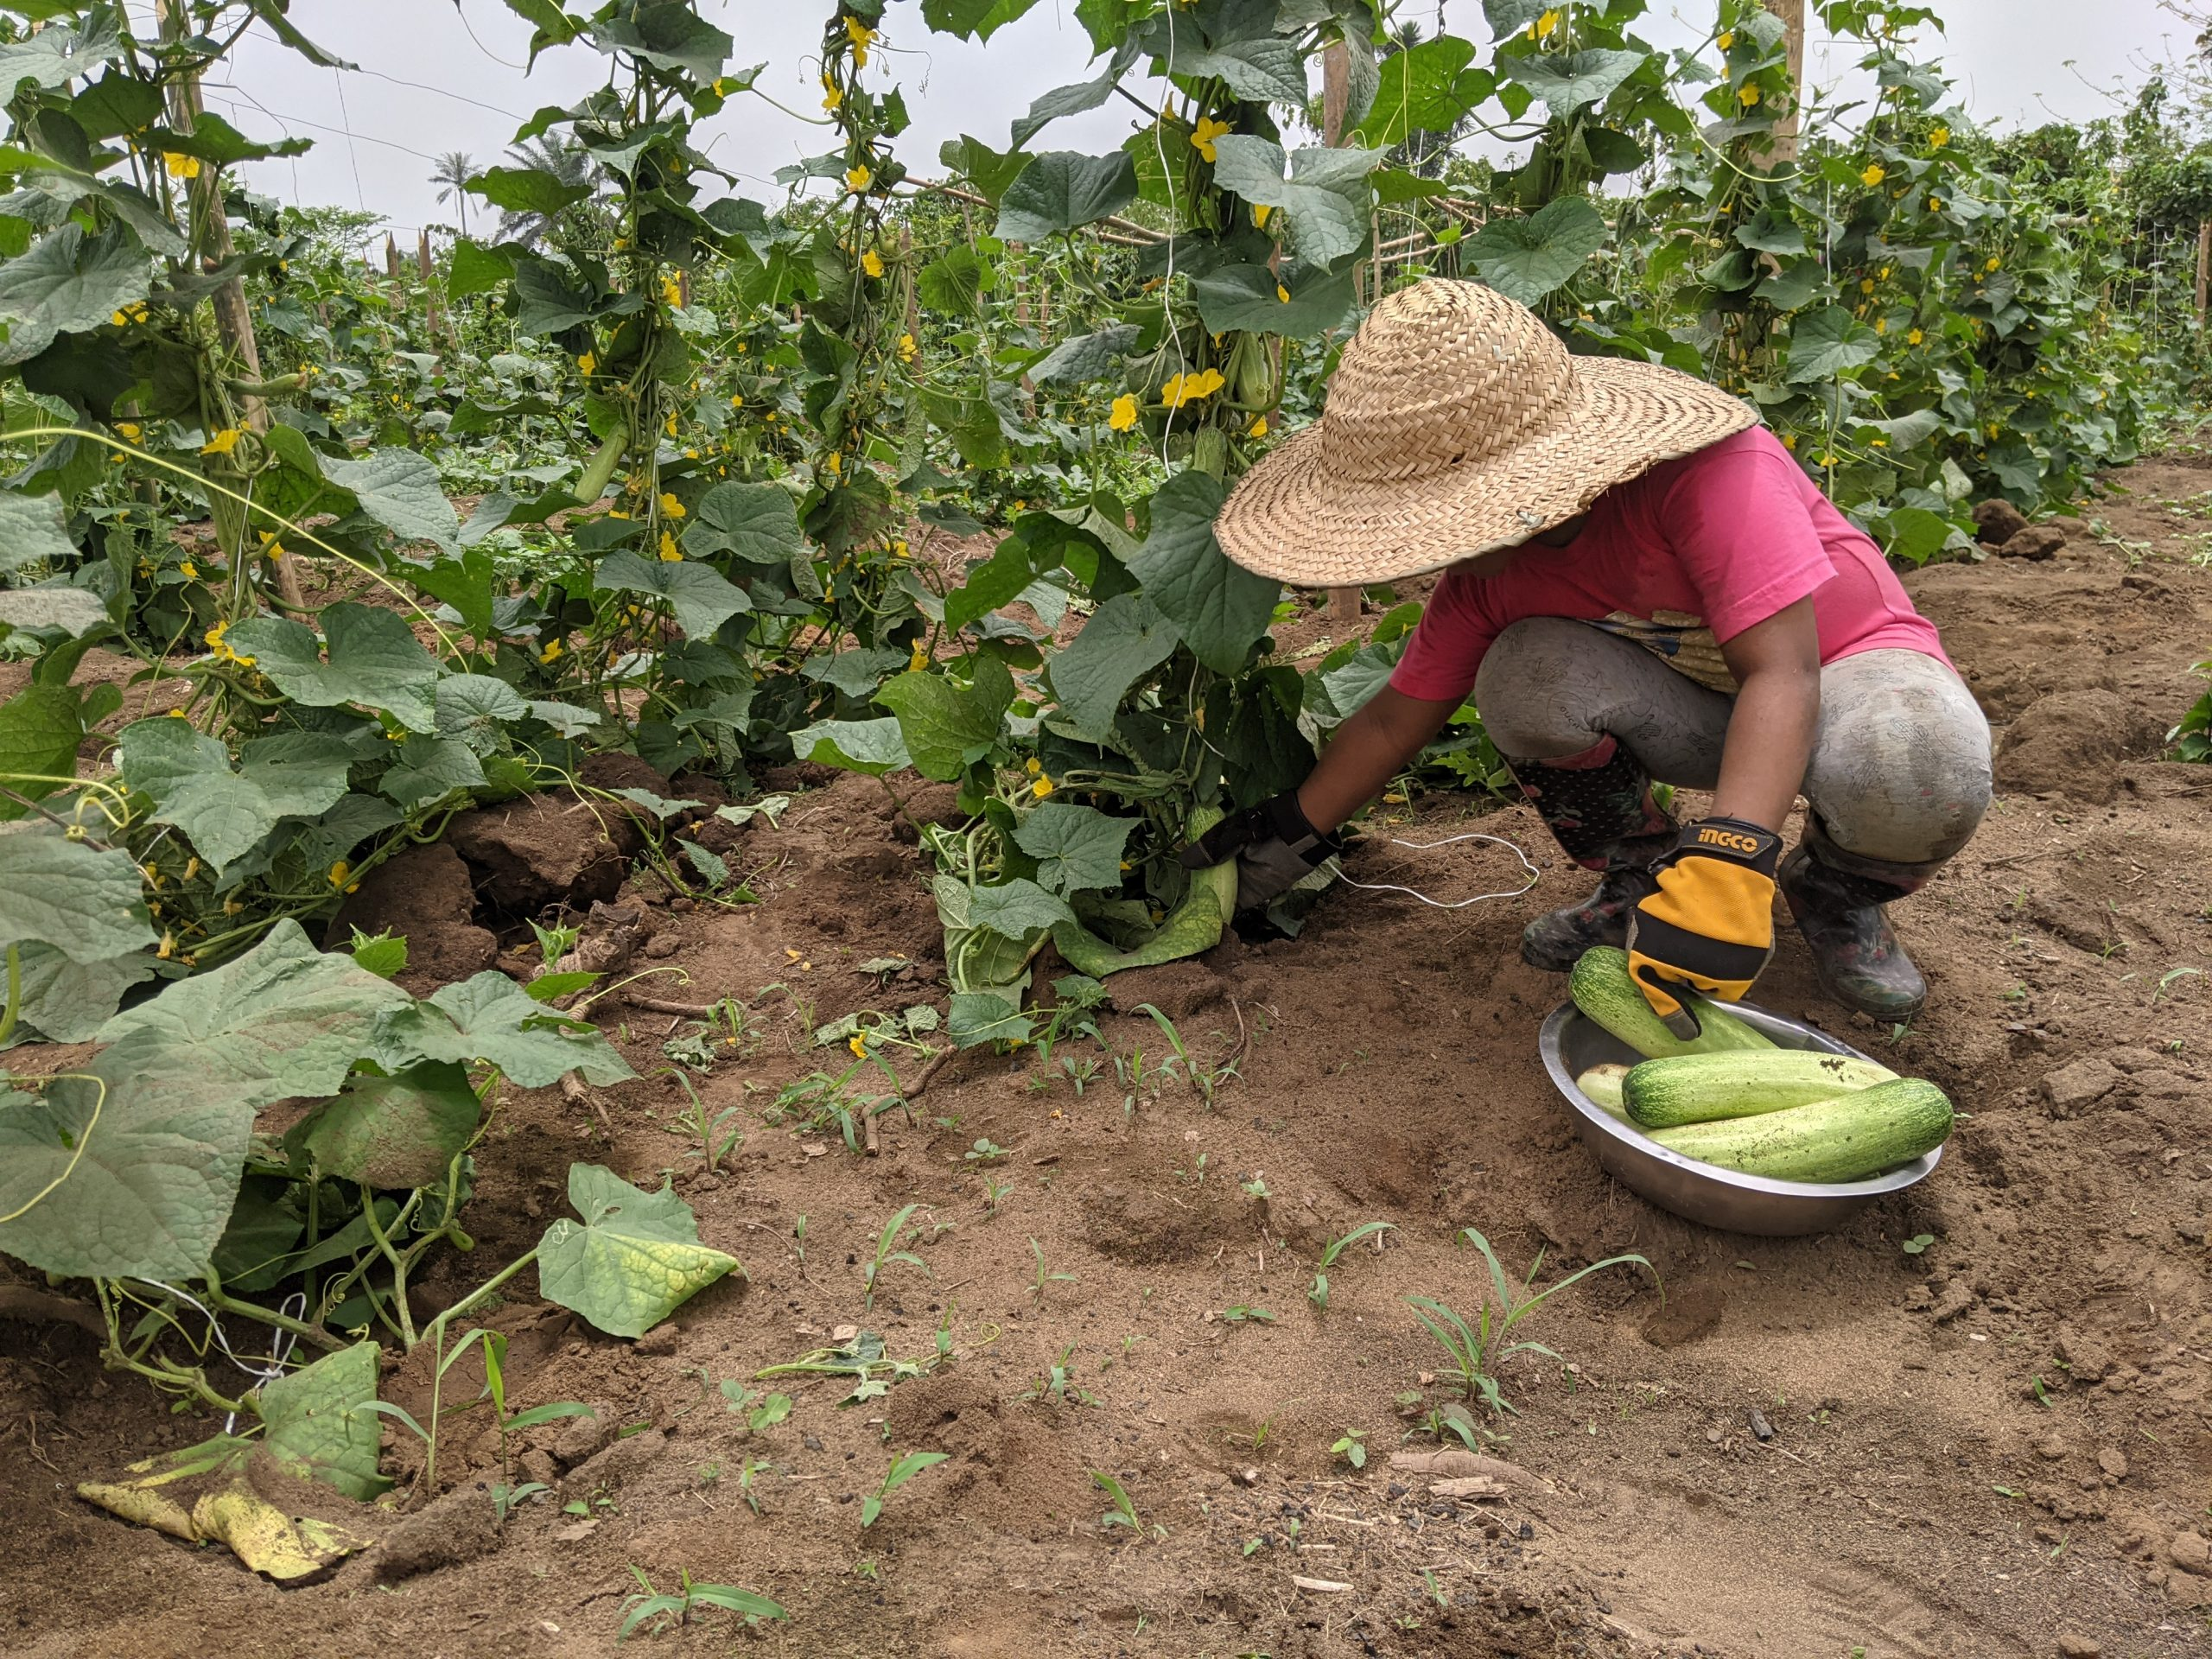 A Kid Farmer harvesting Cucumber at Croftop Farms - A Starthub Women Project